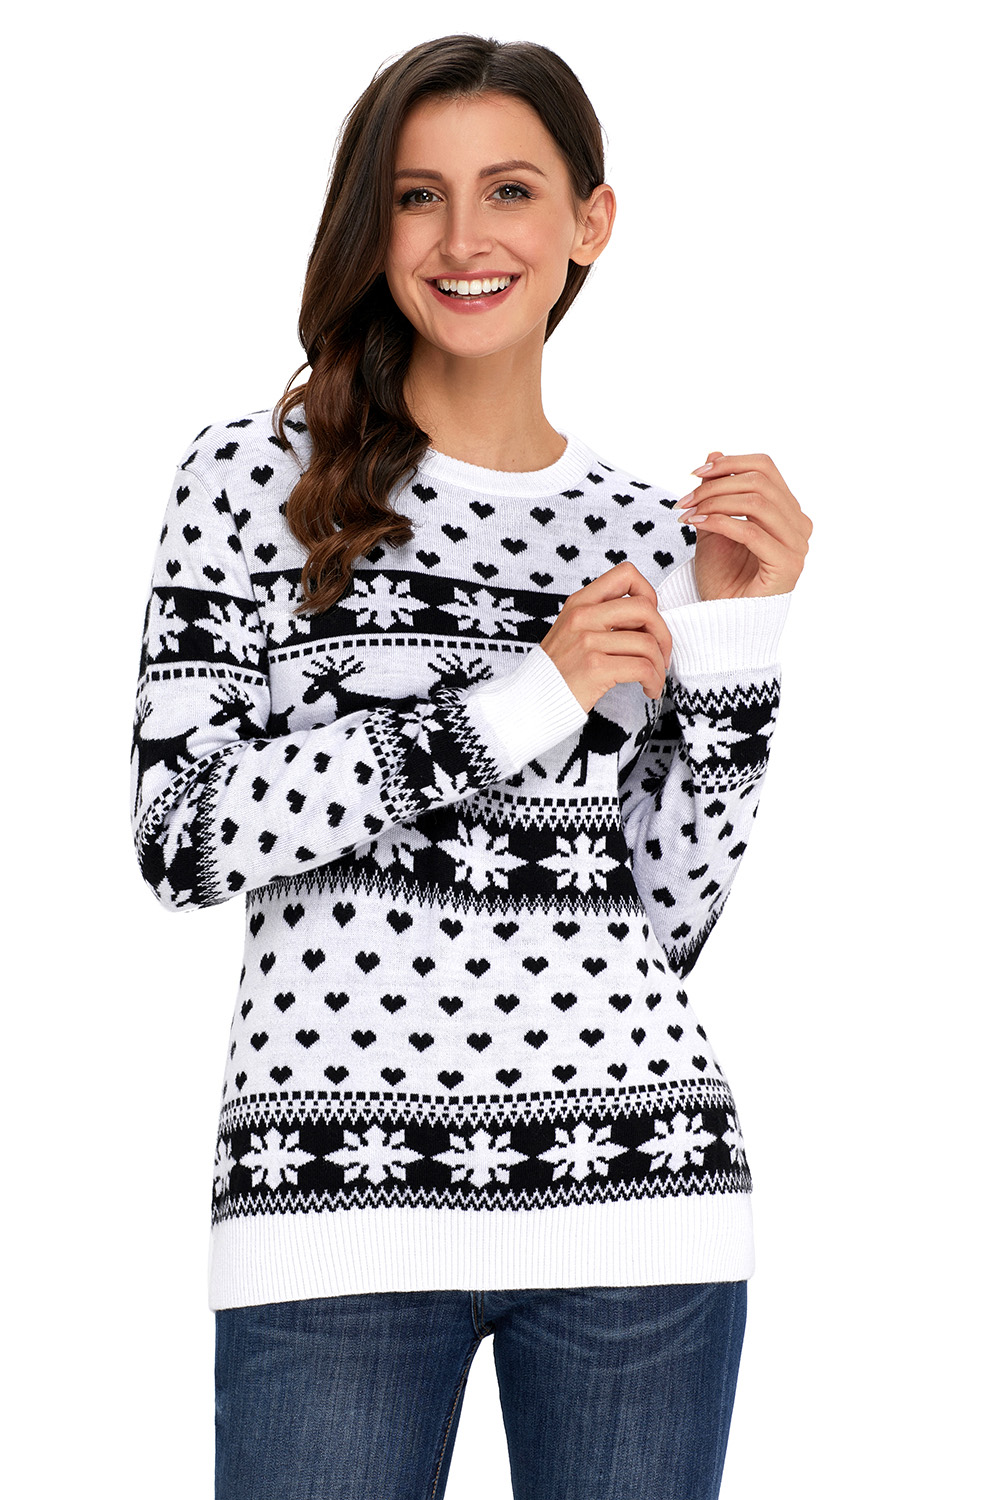 Christmas Sweater Women.Details About Reindeer And Snowflake Knit Christmas Sweater Womens Cute Jumper Winter Animal